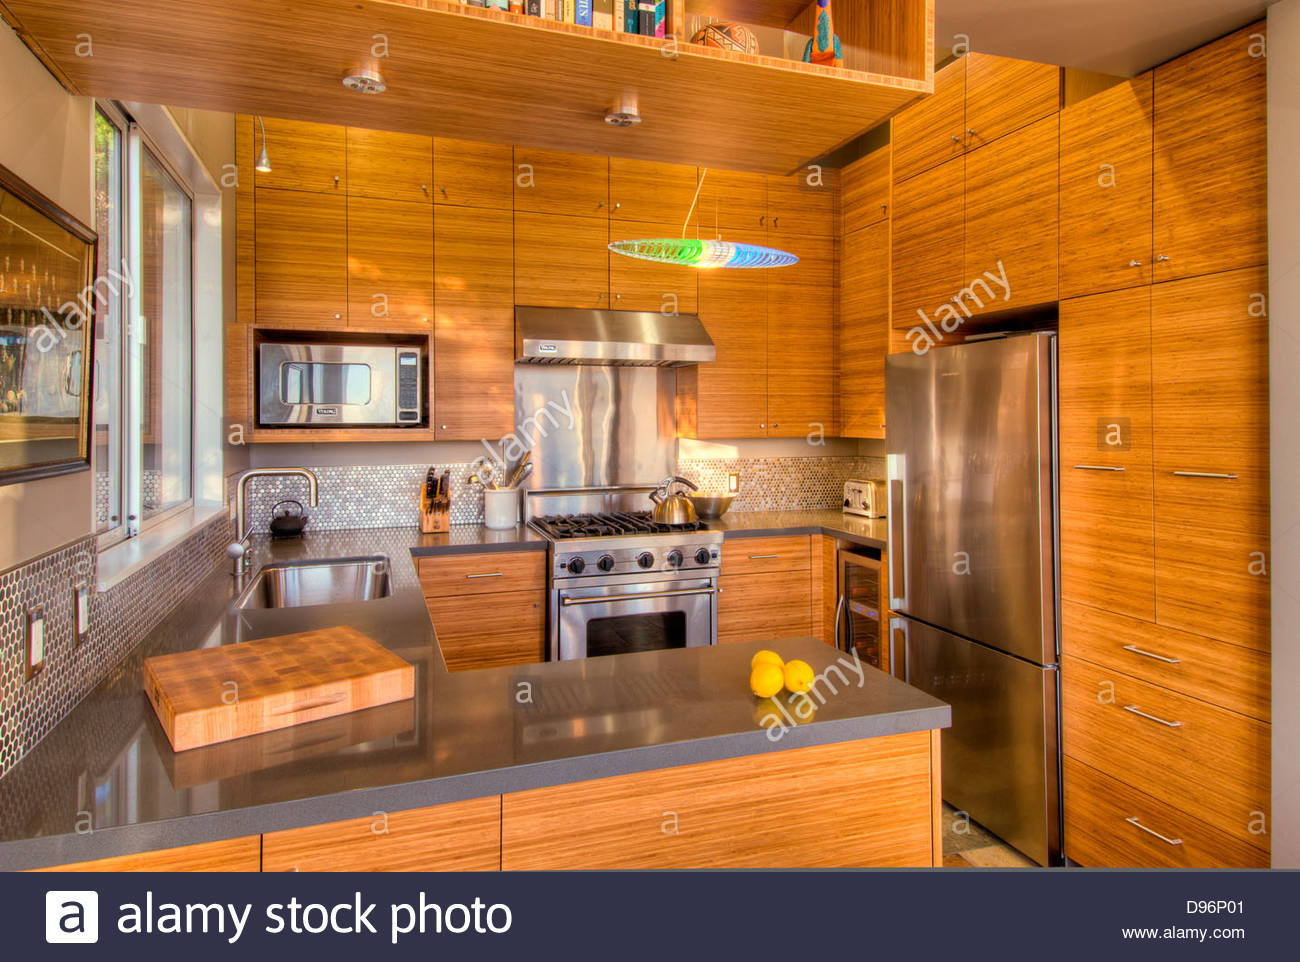 ordinary Kitchen Remodeling Oakland Ca #1: Residential kitchen remodel, Oakland, California, USA